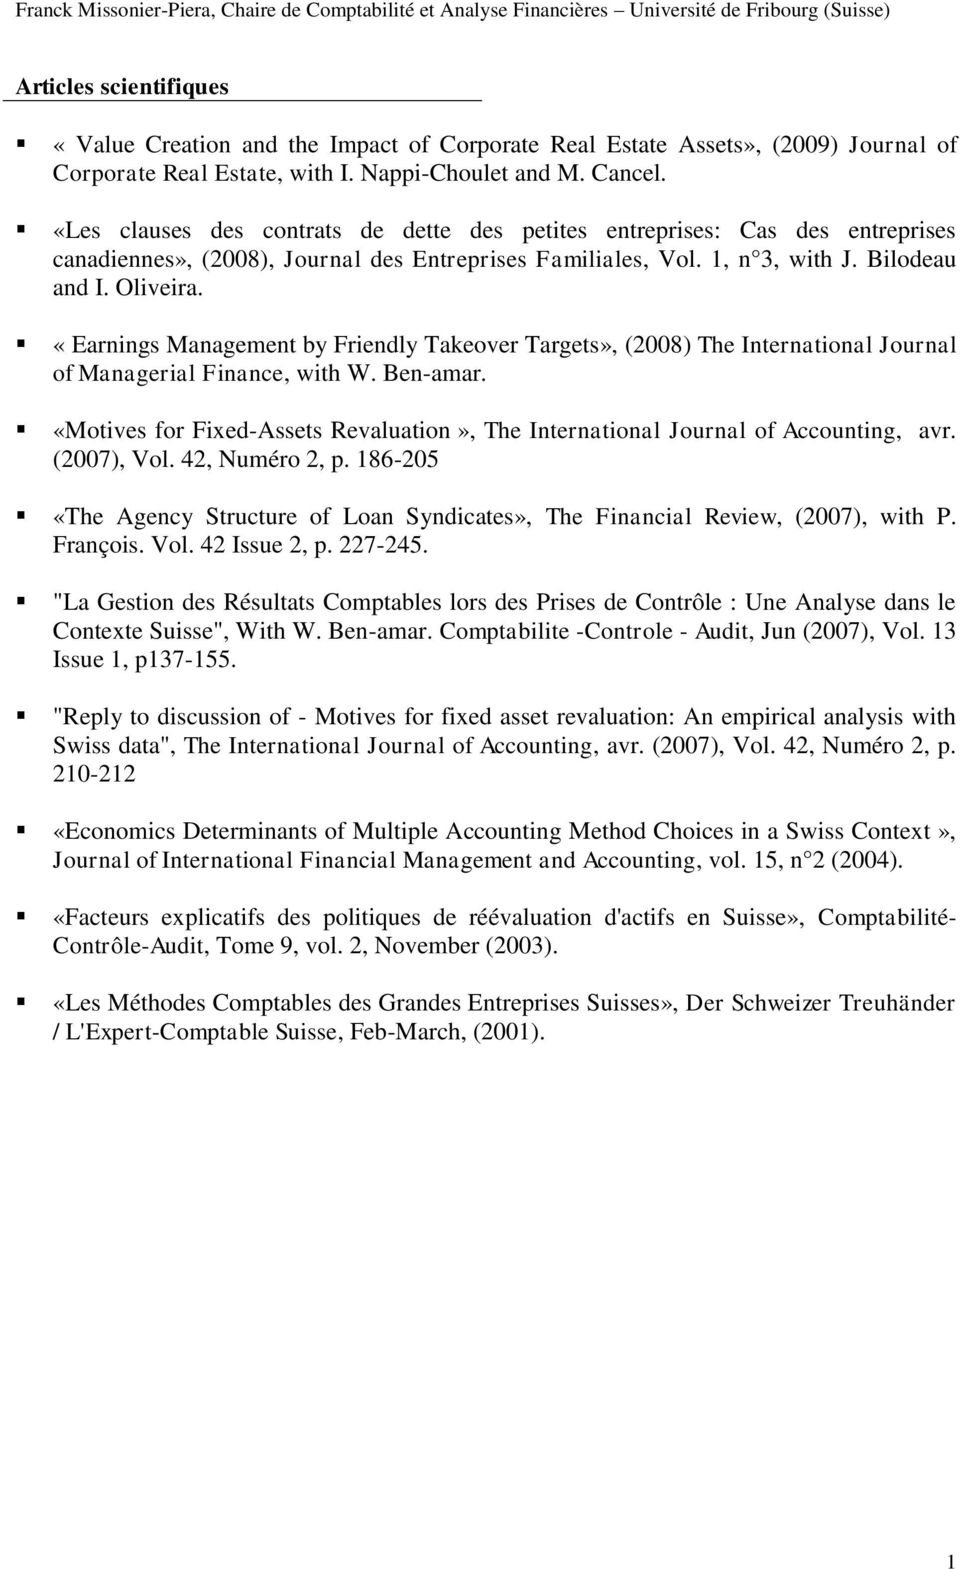 «Earnings Management by Friendly Takeover Targets», (2008) The International Journal of Managerial Finance, with W. Ben-amar.